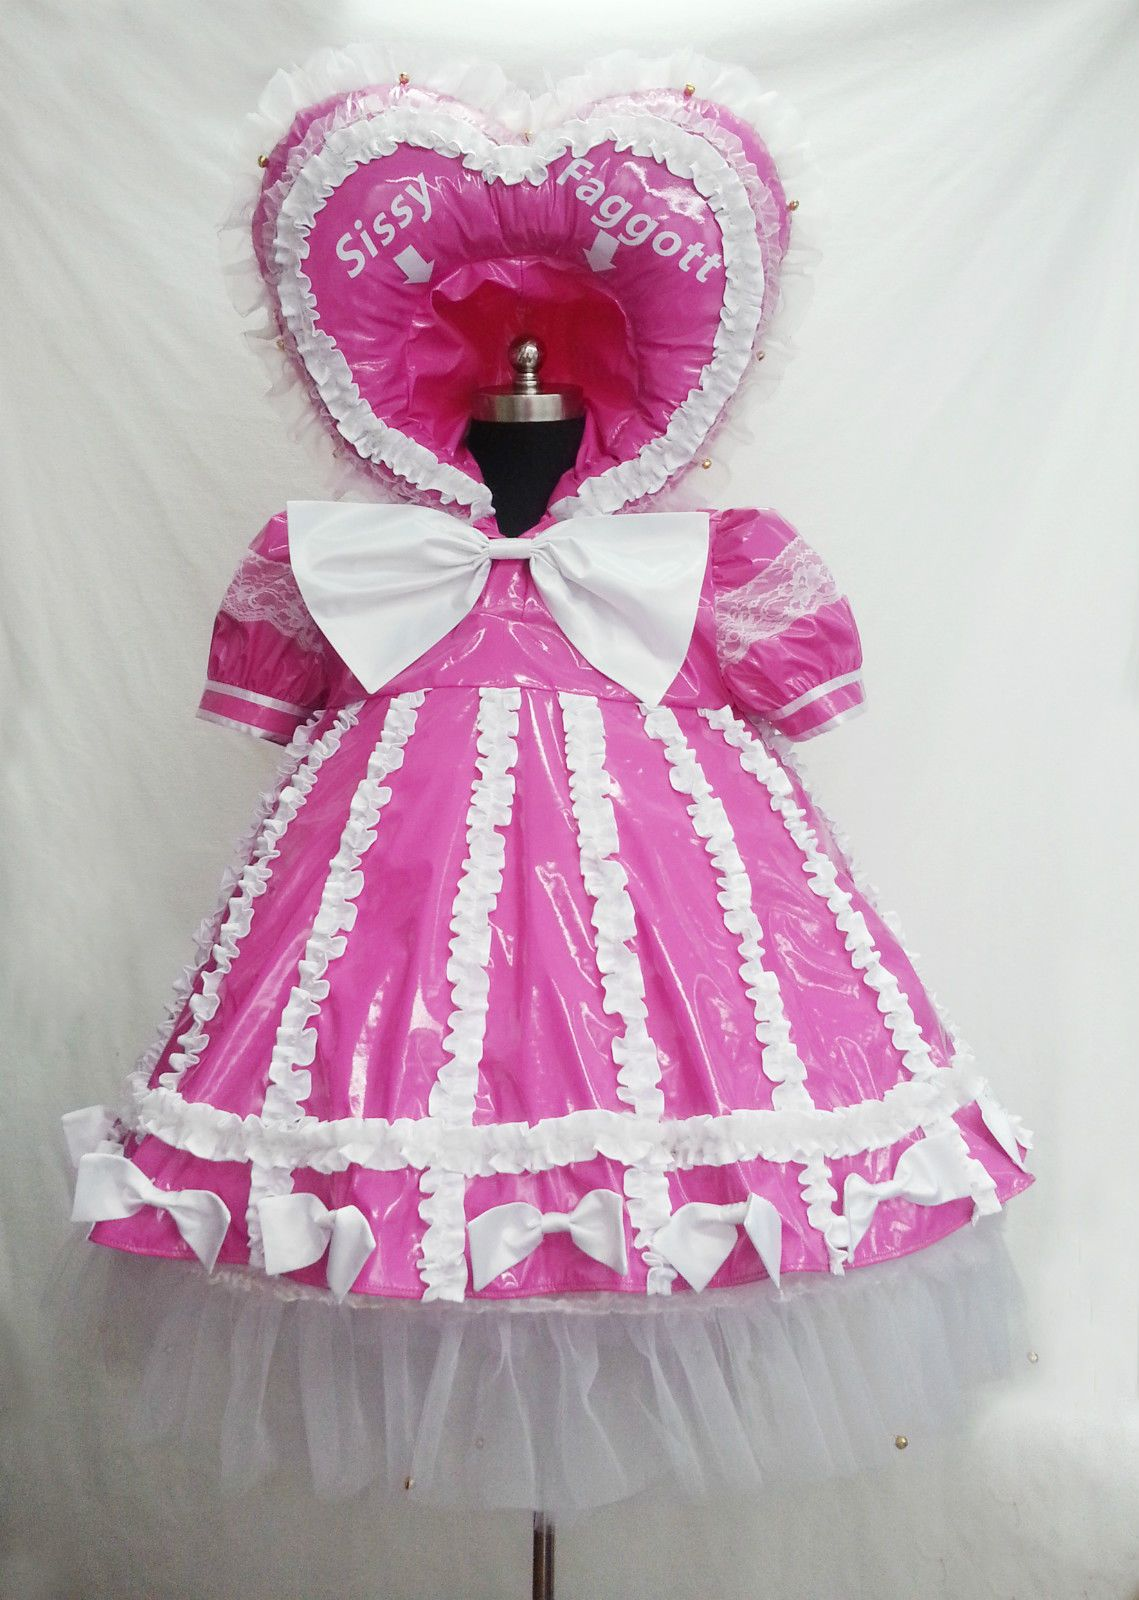 Where Sissy clothes fetish interesting. You